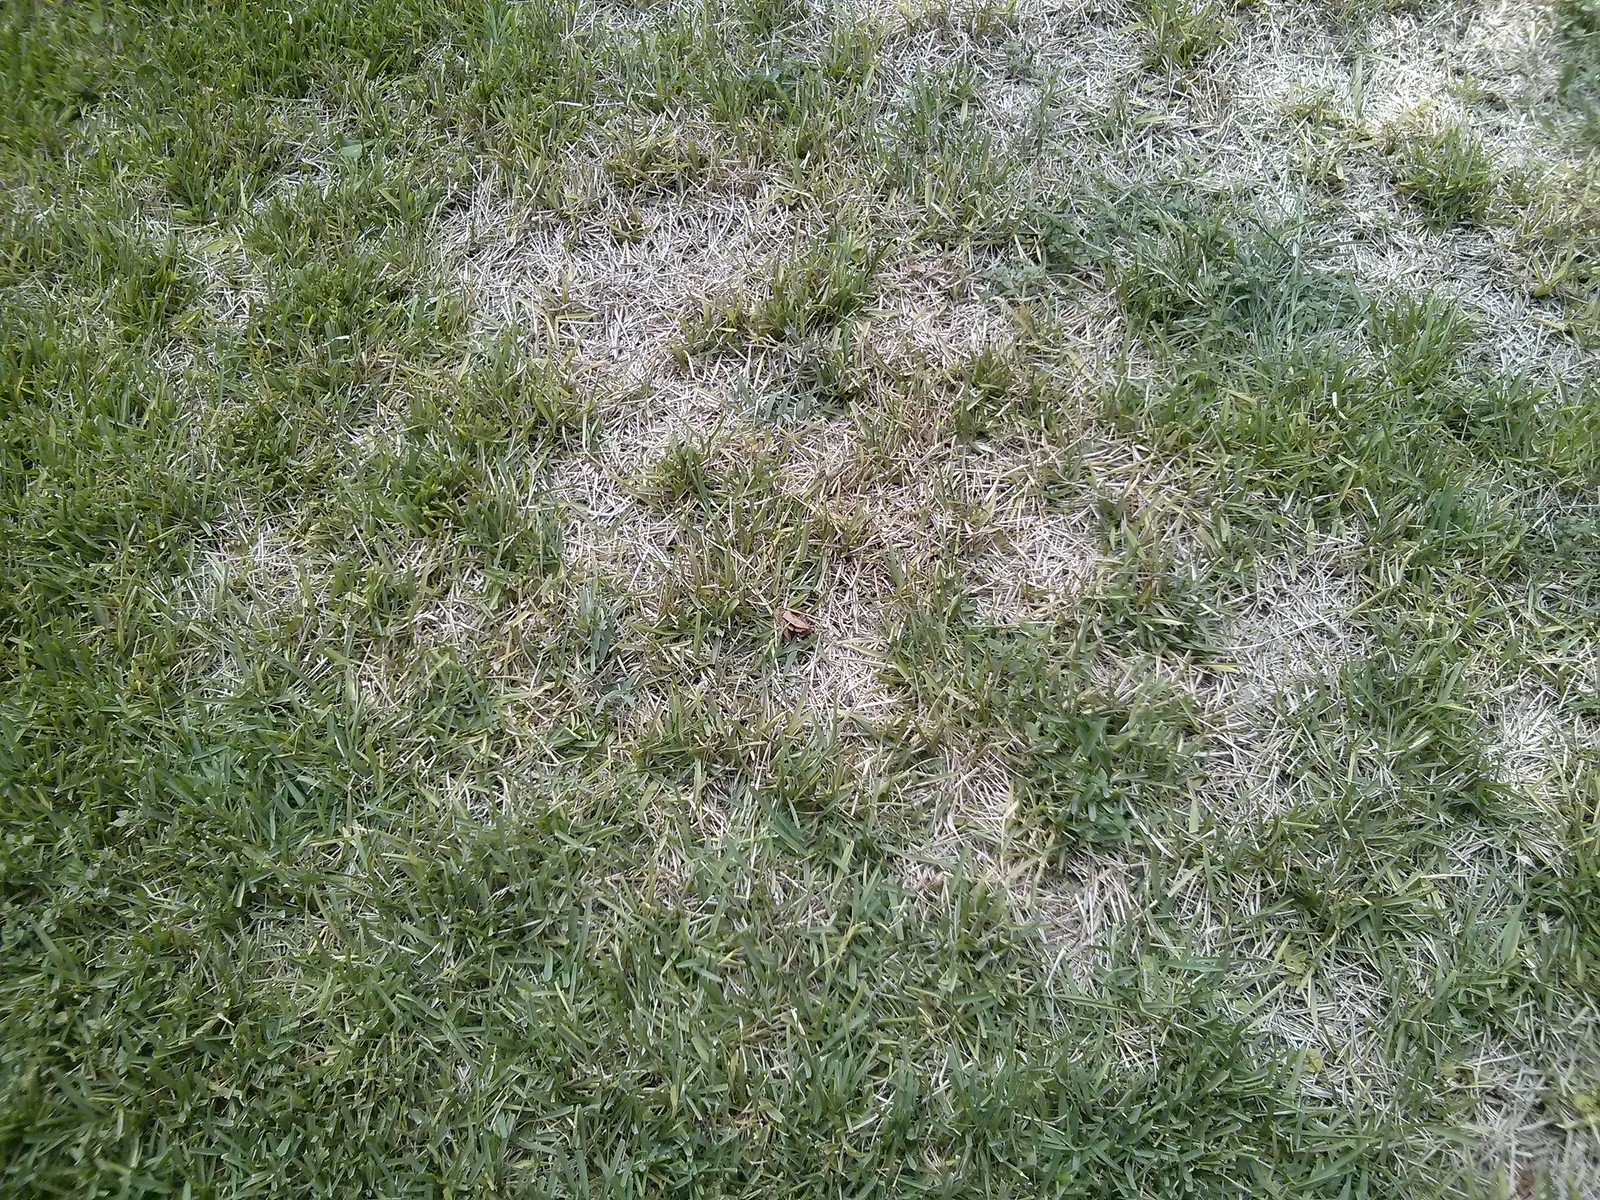 brown spots on lawn